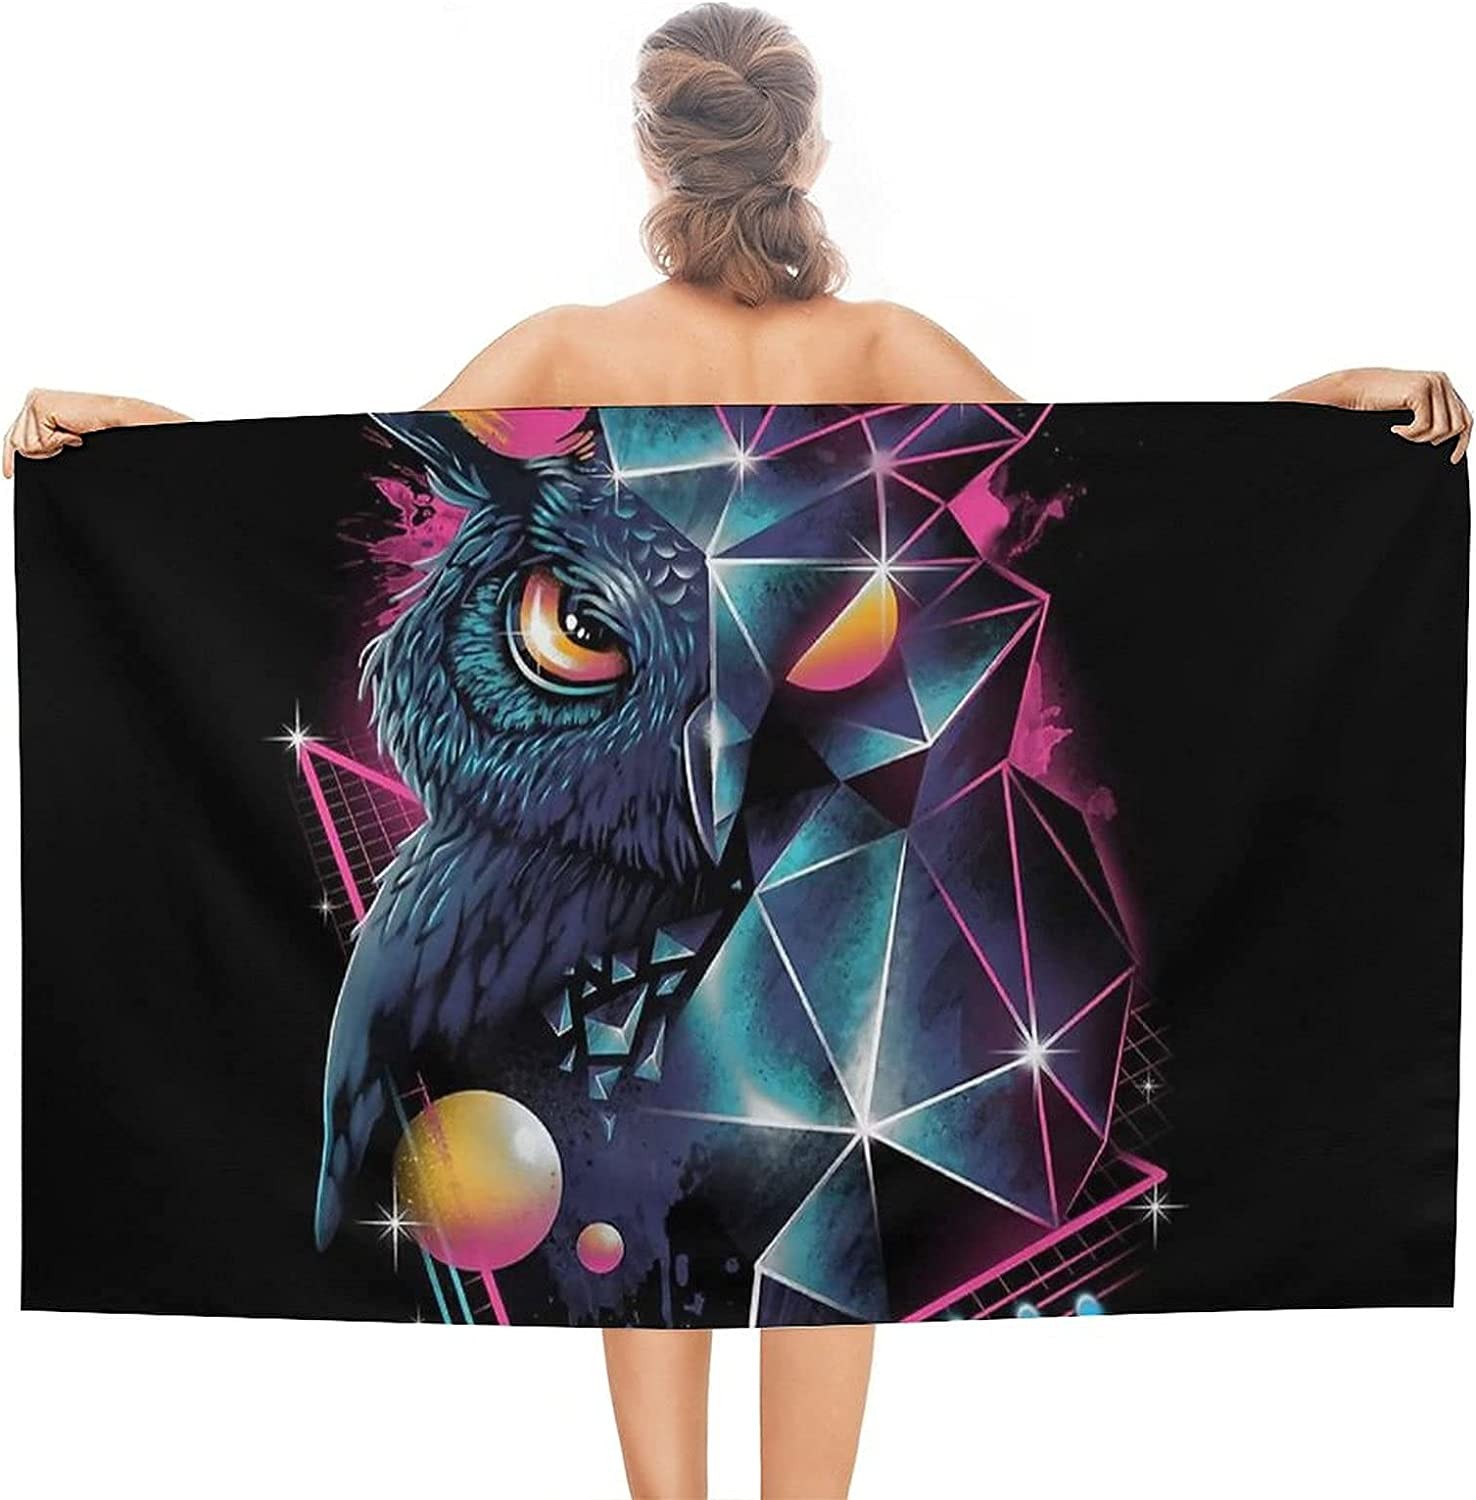 Owl Beach Towels Adult In a popularity Sandproof Superfine Ove Towel Direct sale of manufacturer Fiber